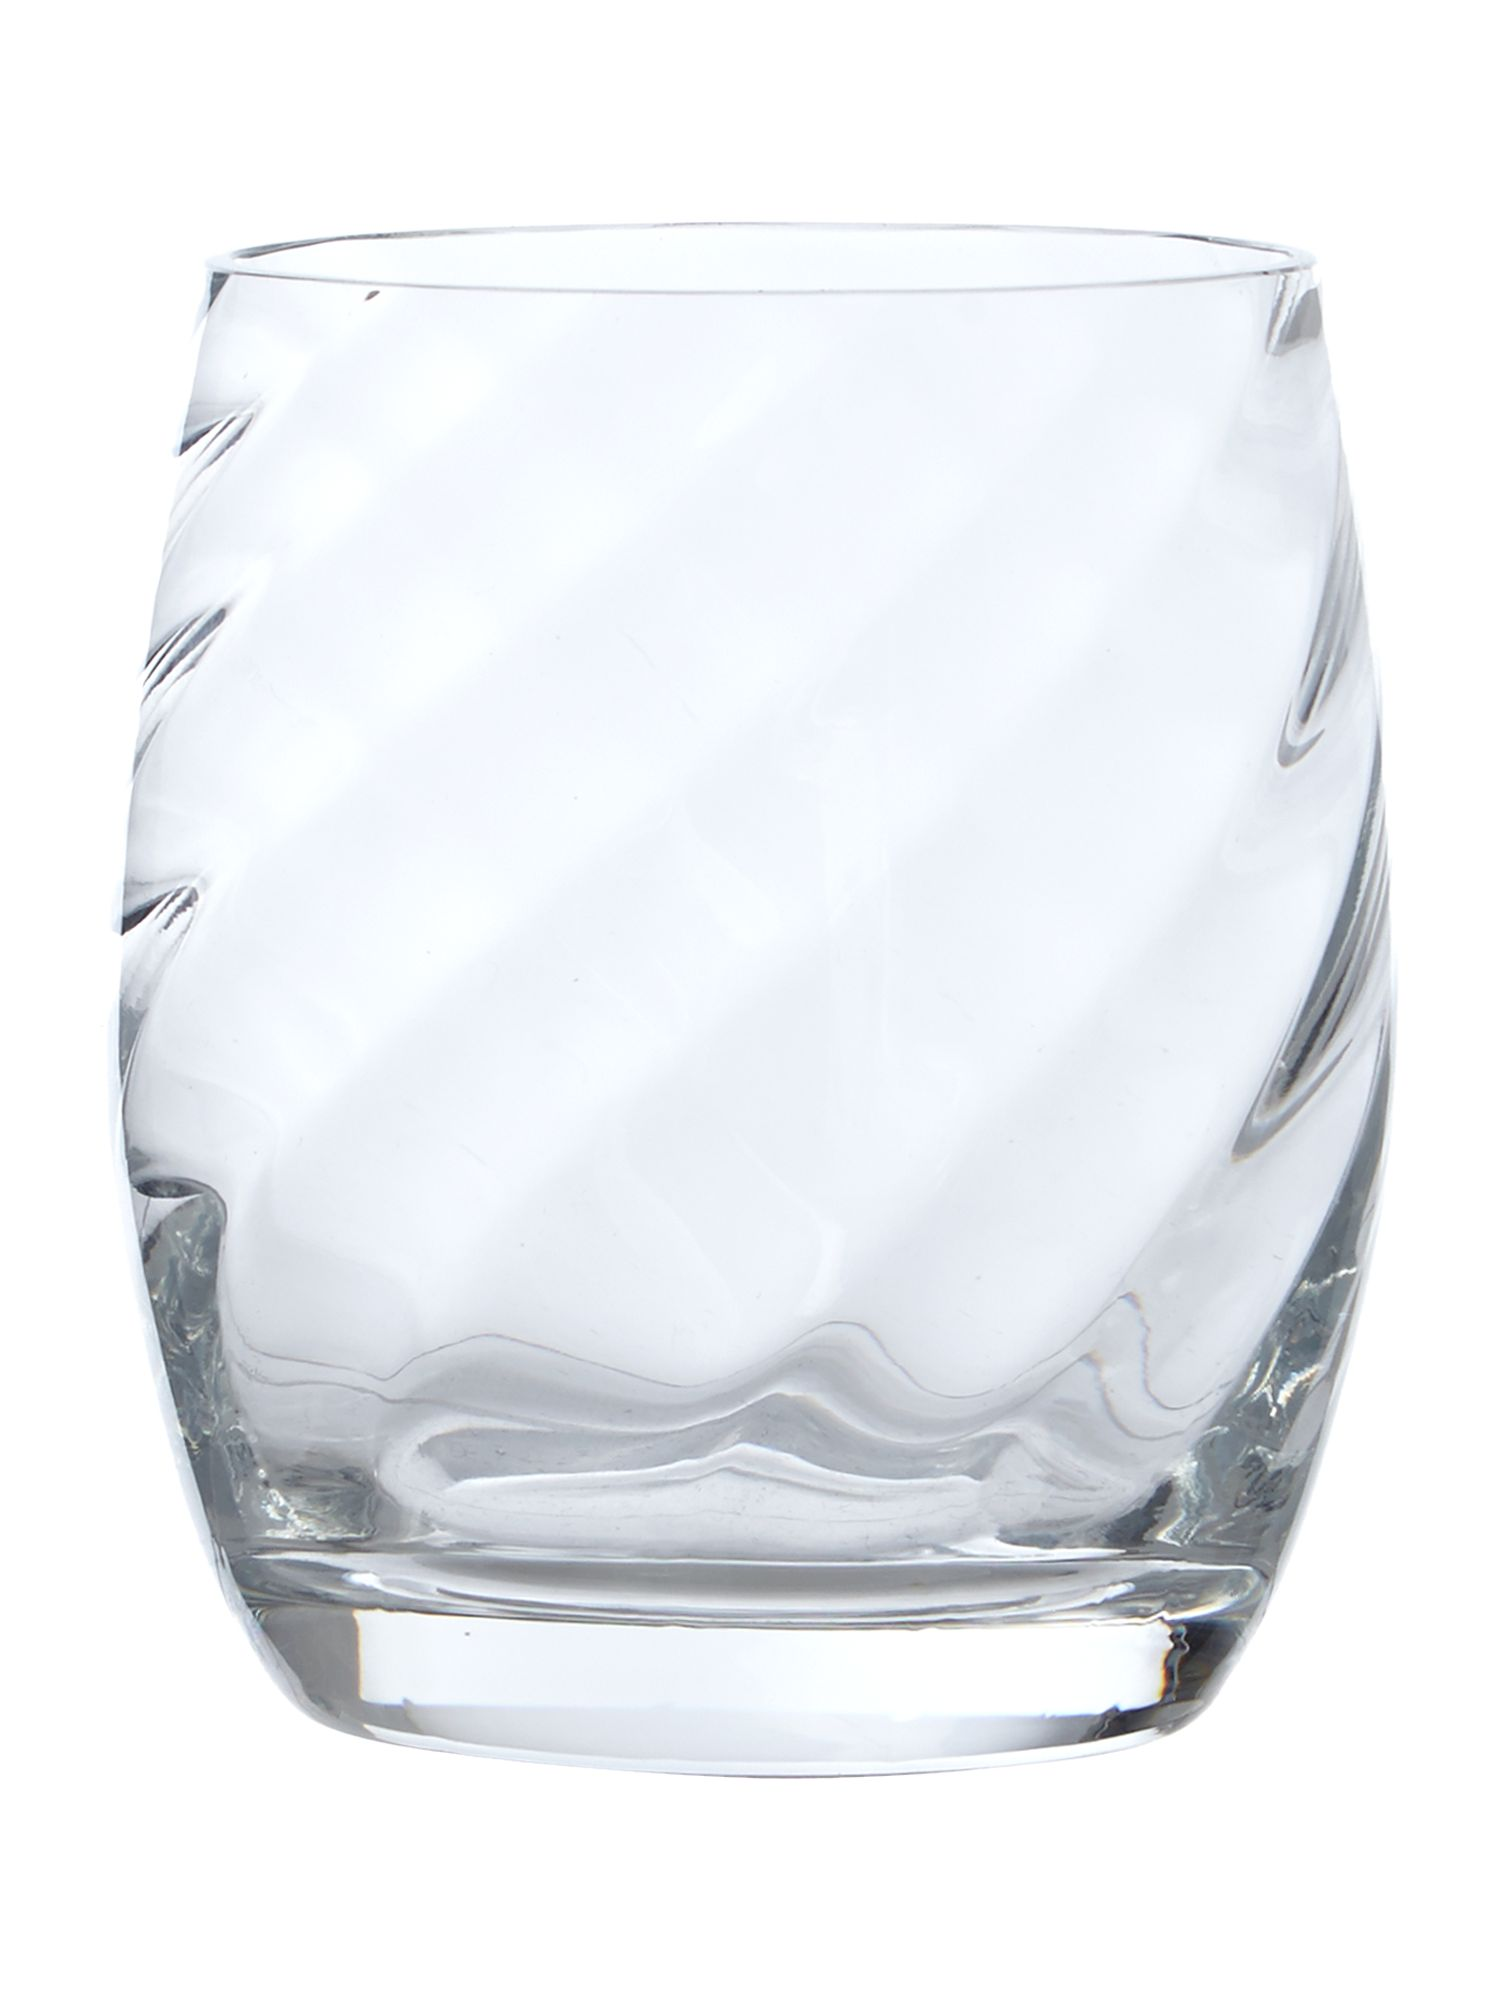 Optic clear tumbler